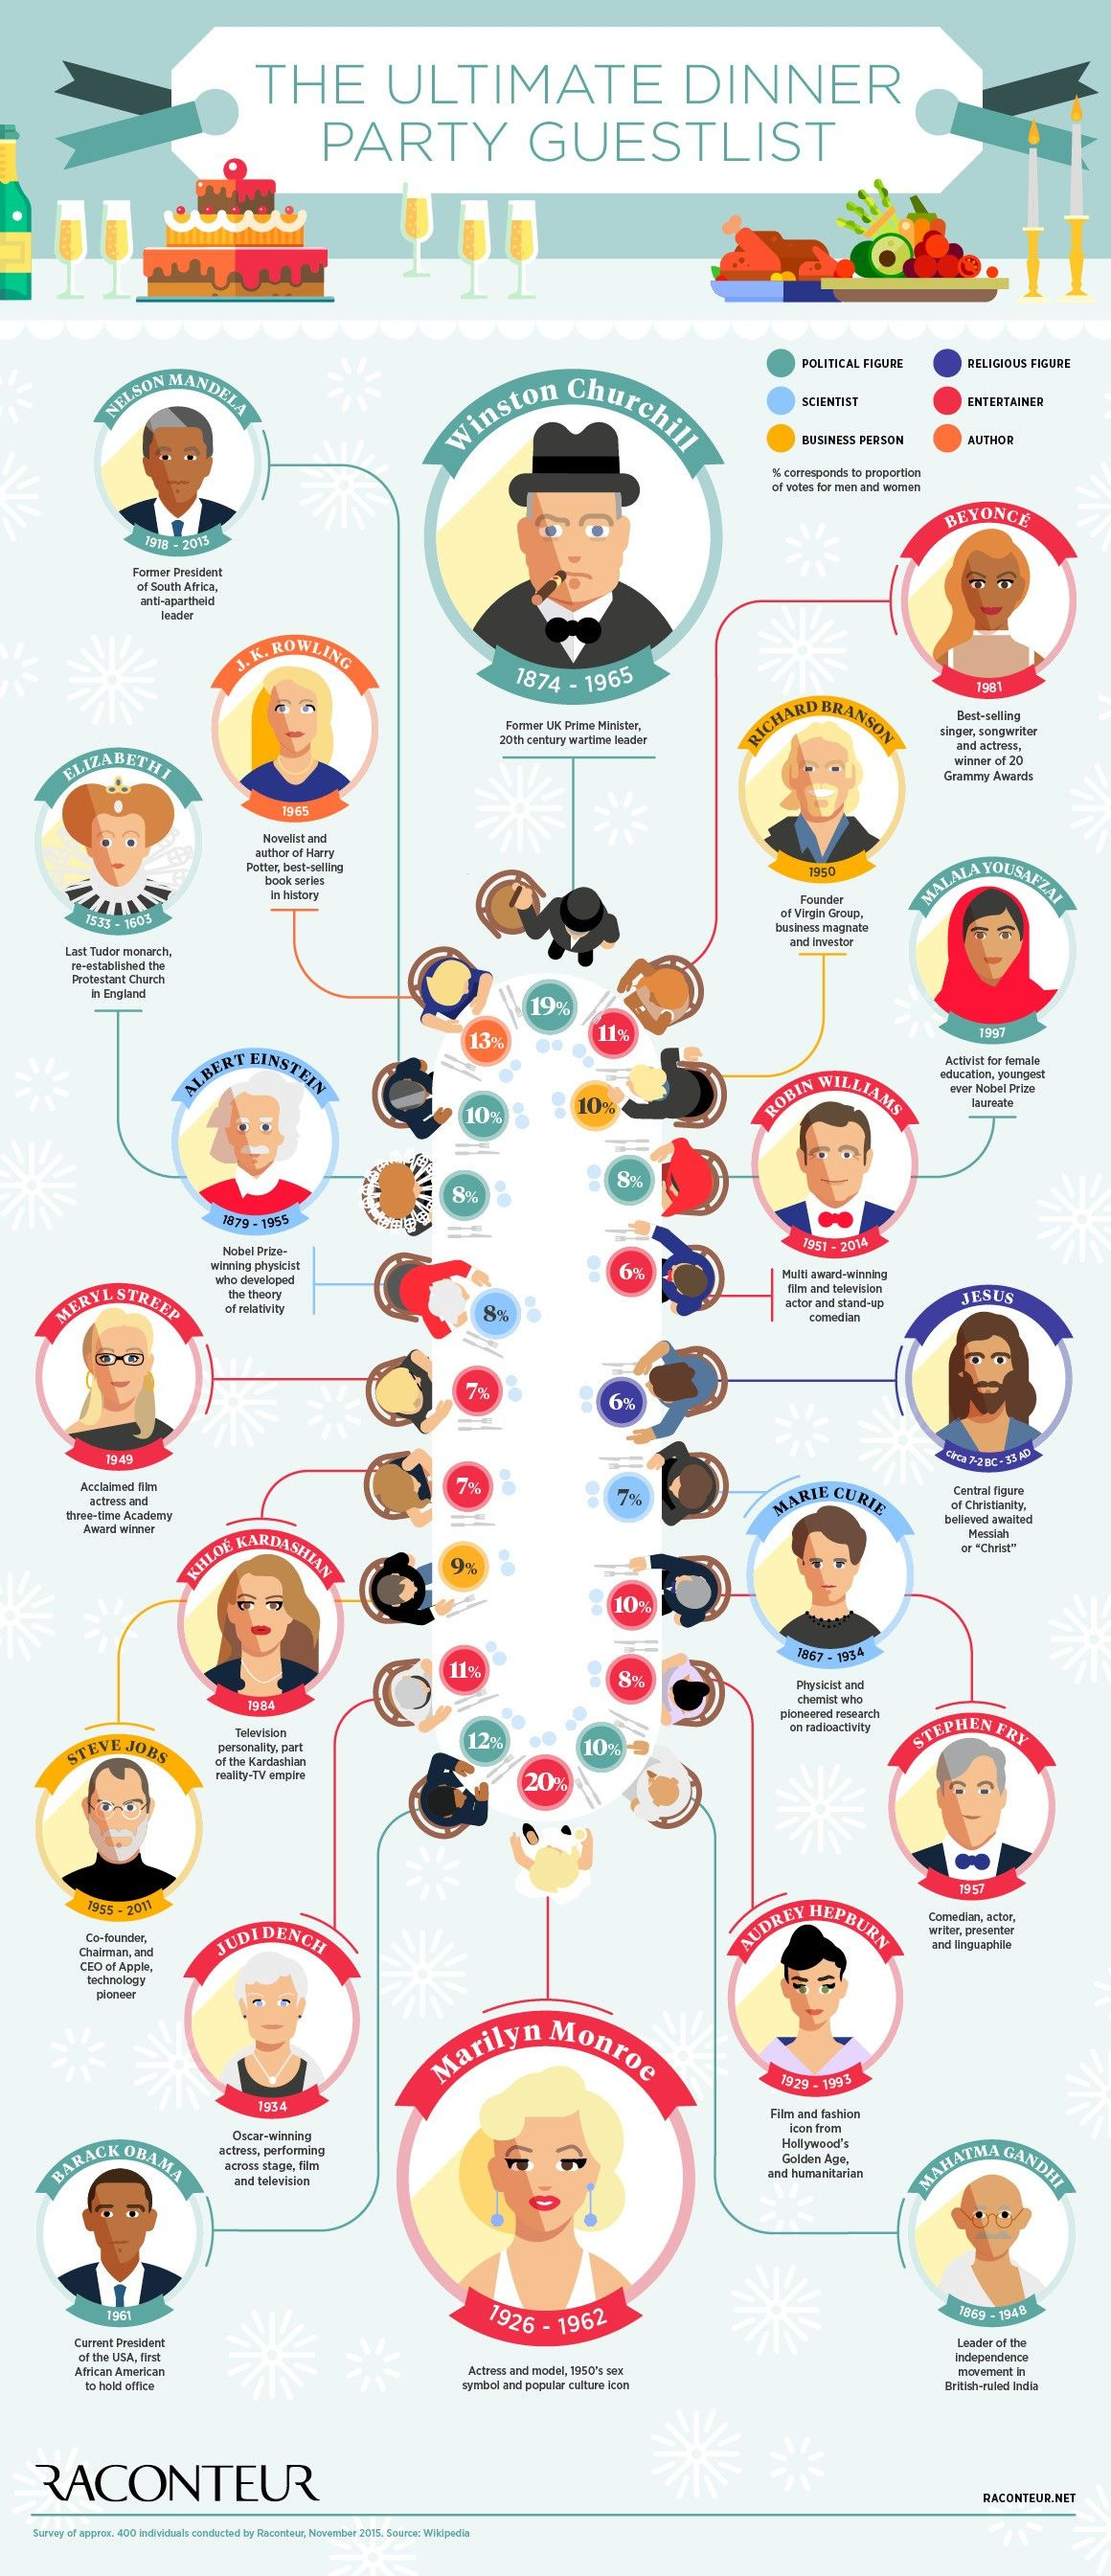 The Ultimate Dinner Party Guest List #infographic